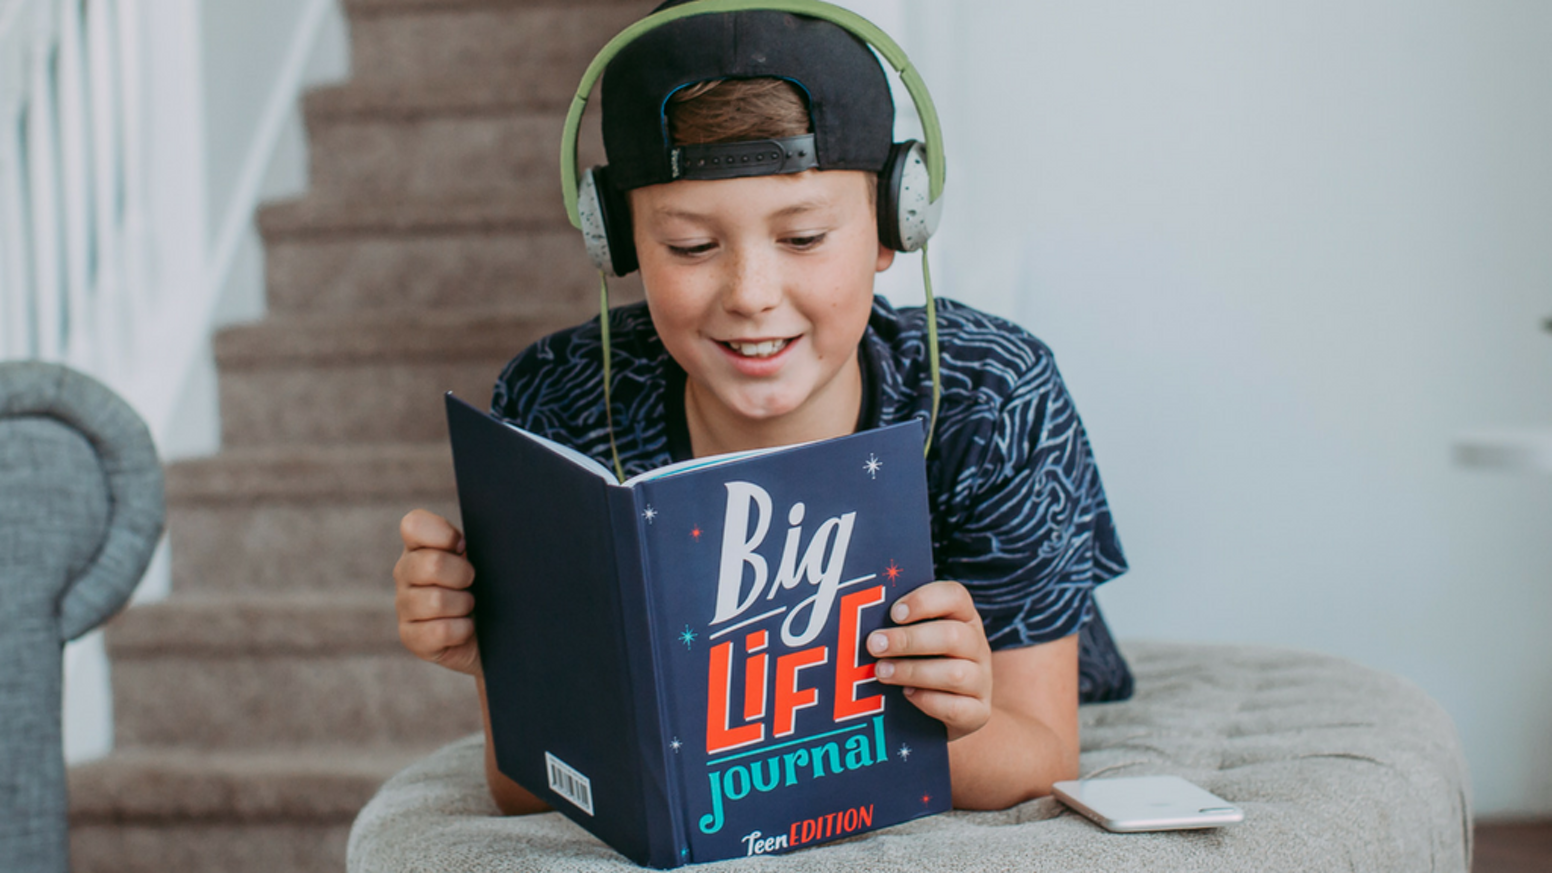 A growth mindset journal which empowers tweens & teens to dream about their future!